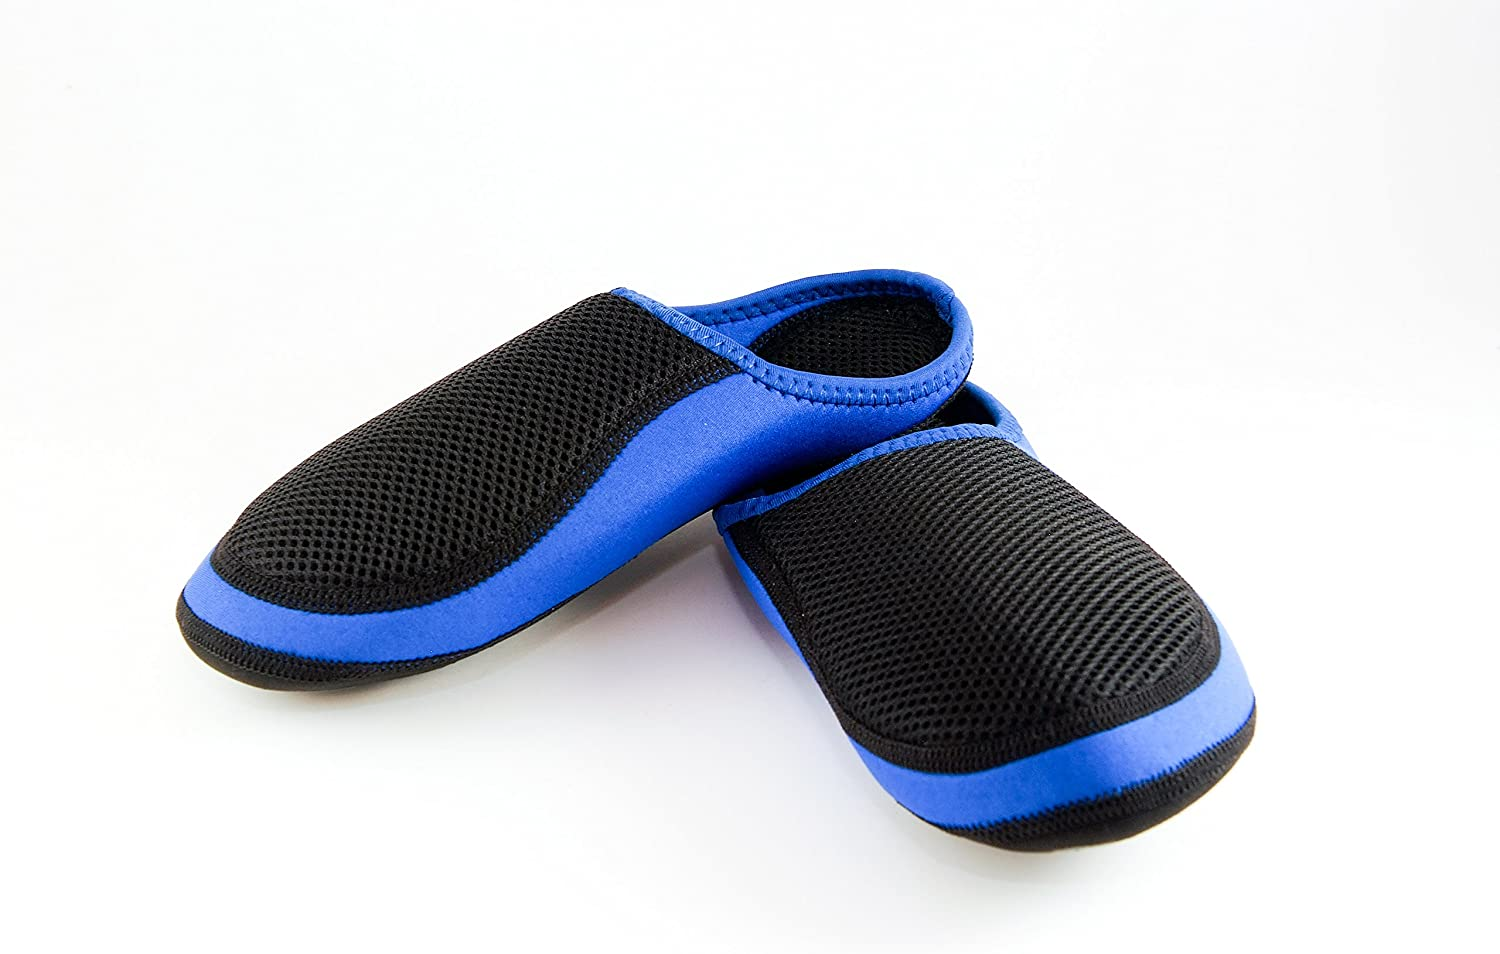 Nufoot Indoor Mens shoes Slipper Black Mesh Cushies, Royal, X-Large, 2 Count